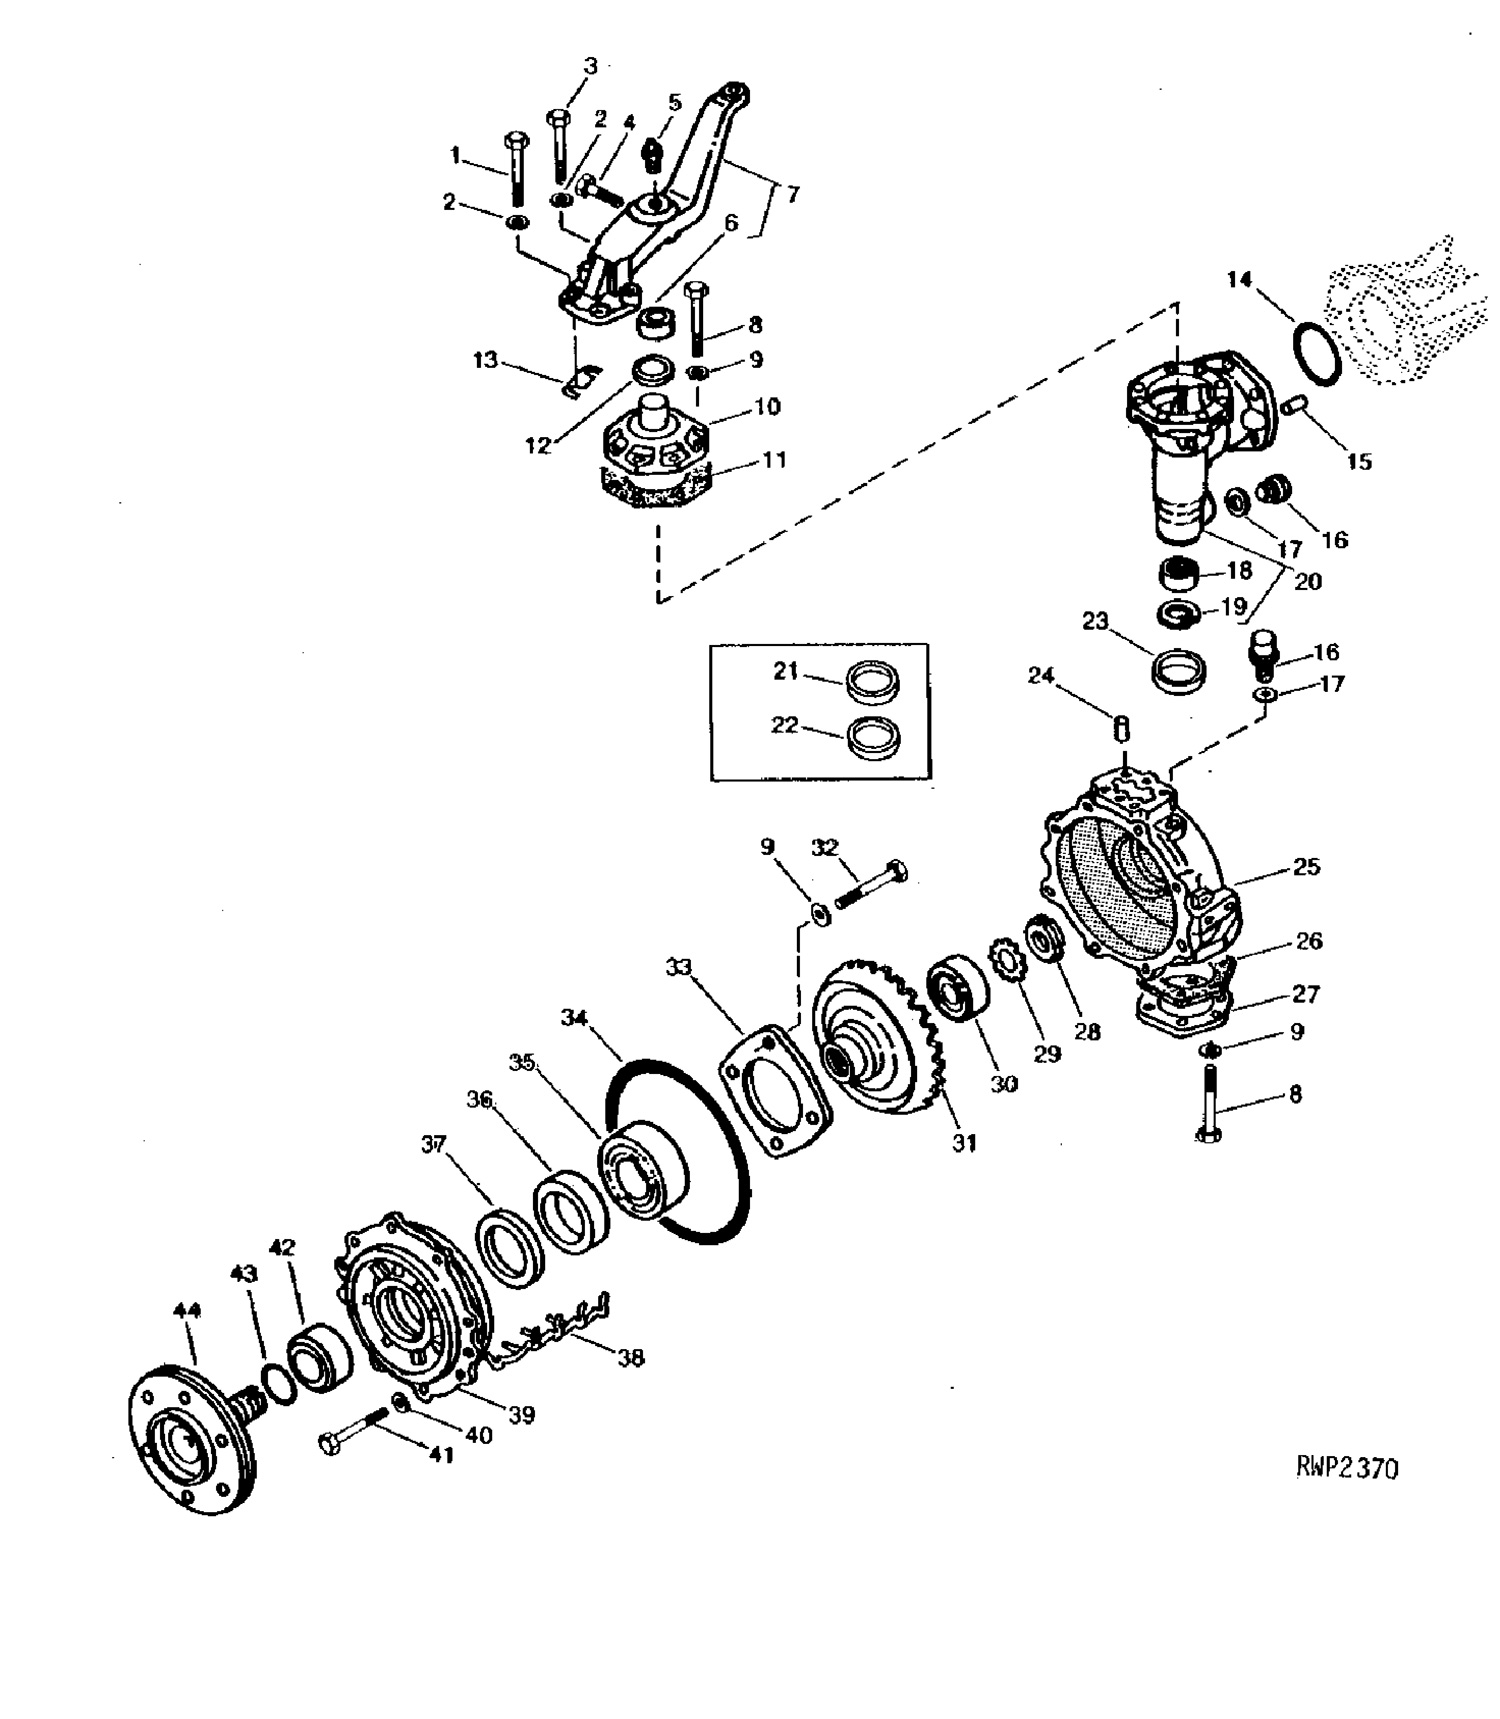 John Deere 855 Tractor Wiring Diagram Trusted For 245 Free Download L118 L20 5310